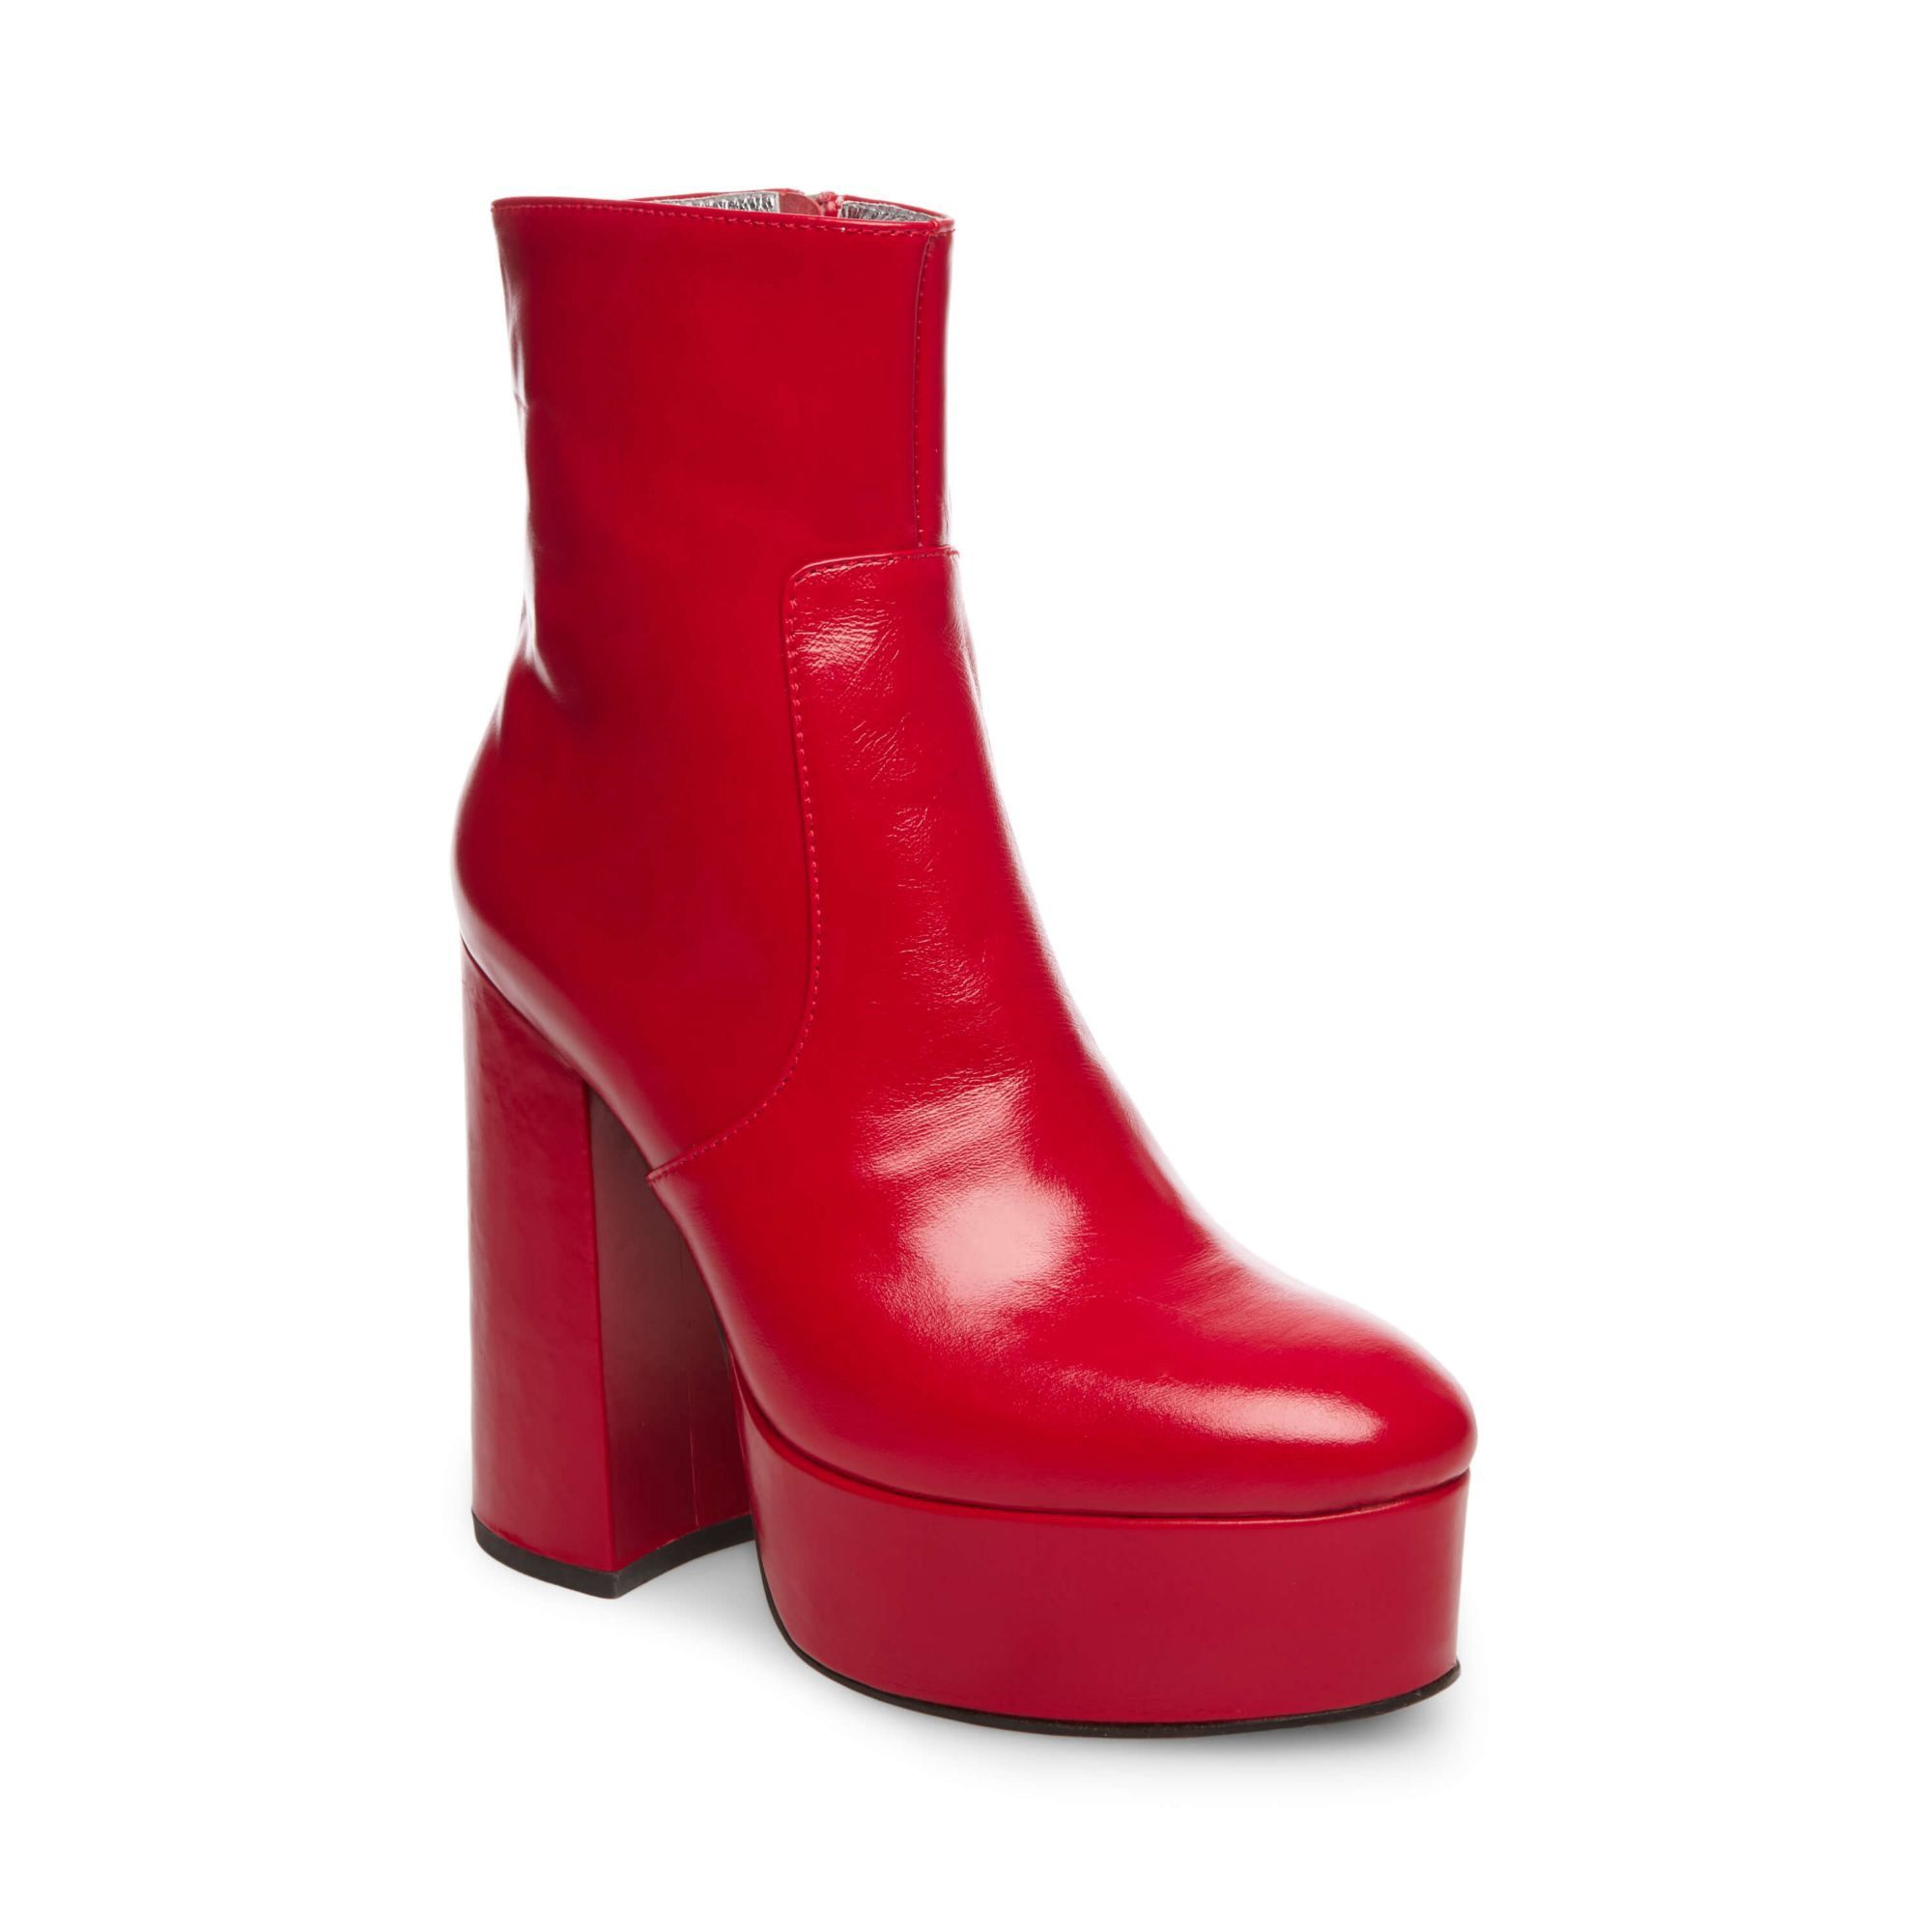 Inapropiado vender Atento  Steve Madden Us-Foxy - Red Leather 9 | Red ankle boots, High heel boots  ankle, Red leather boots